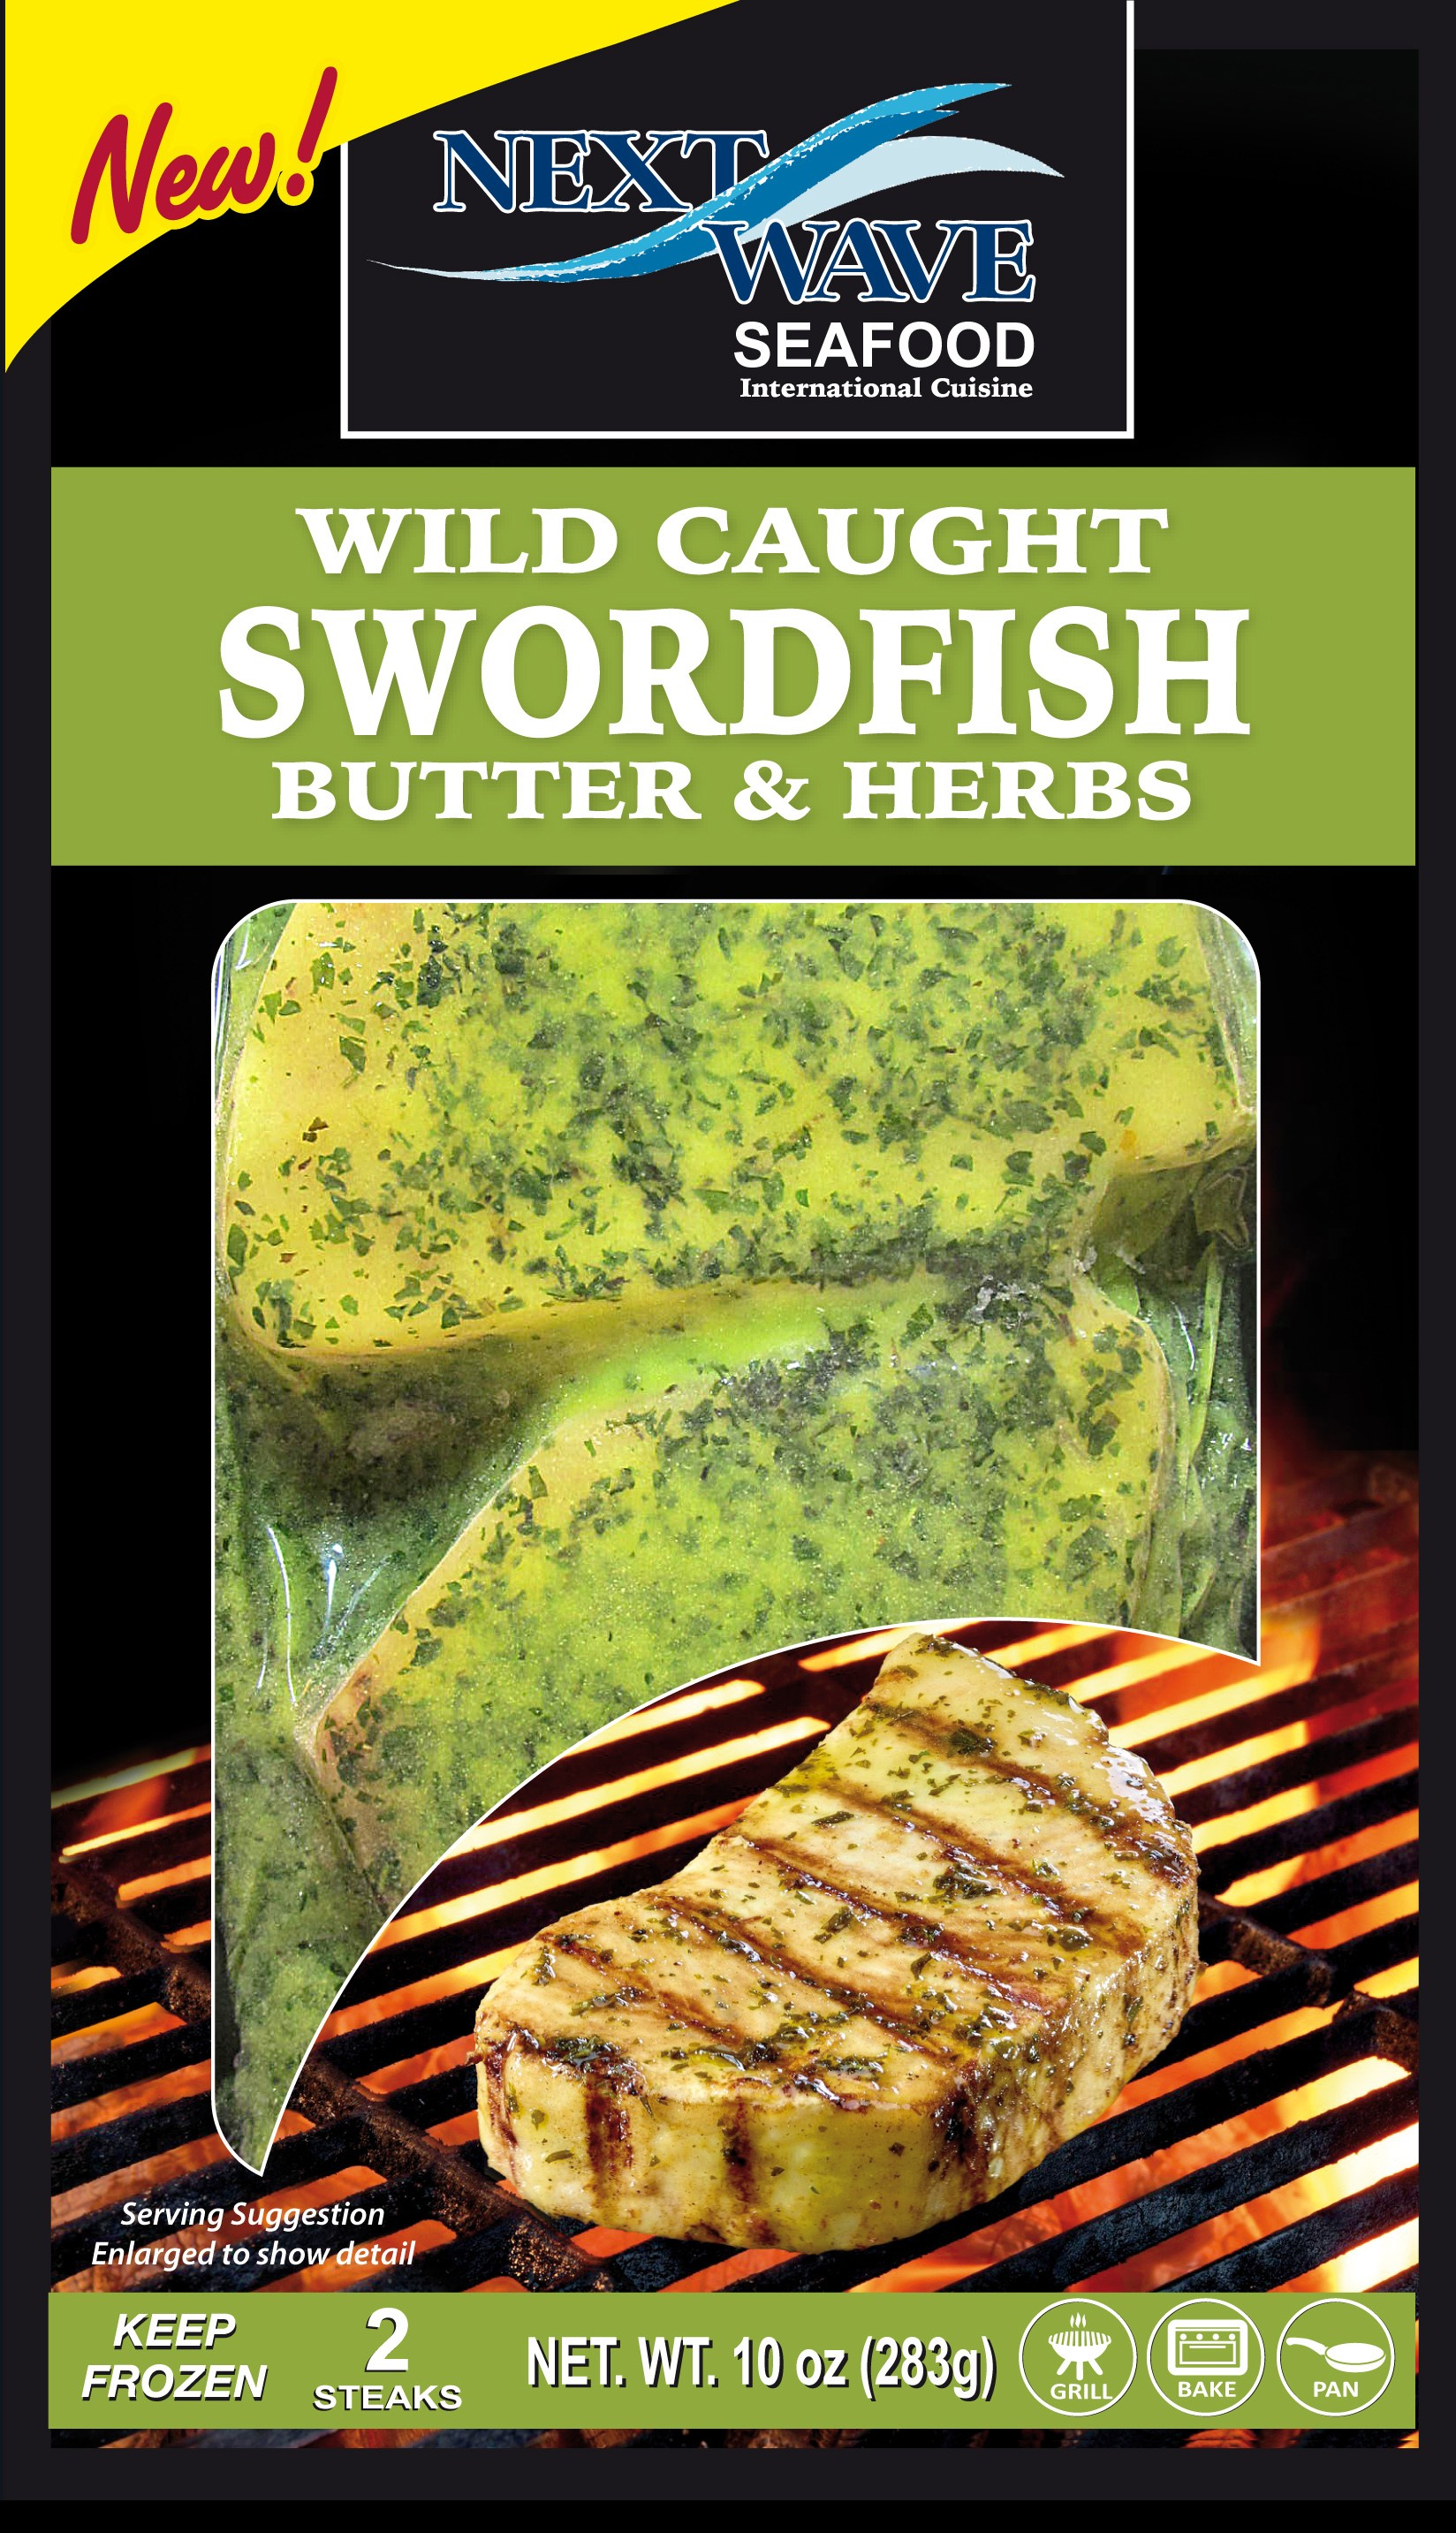 Sword, butter & herb f.jpg